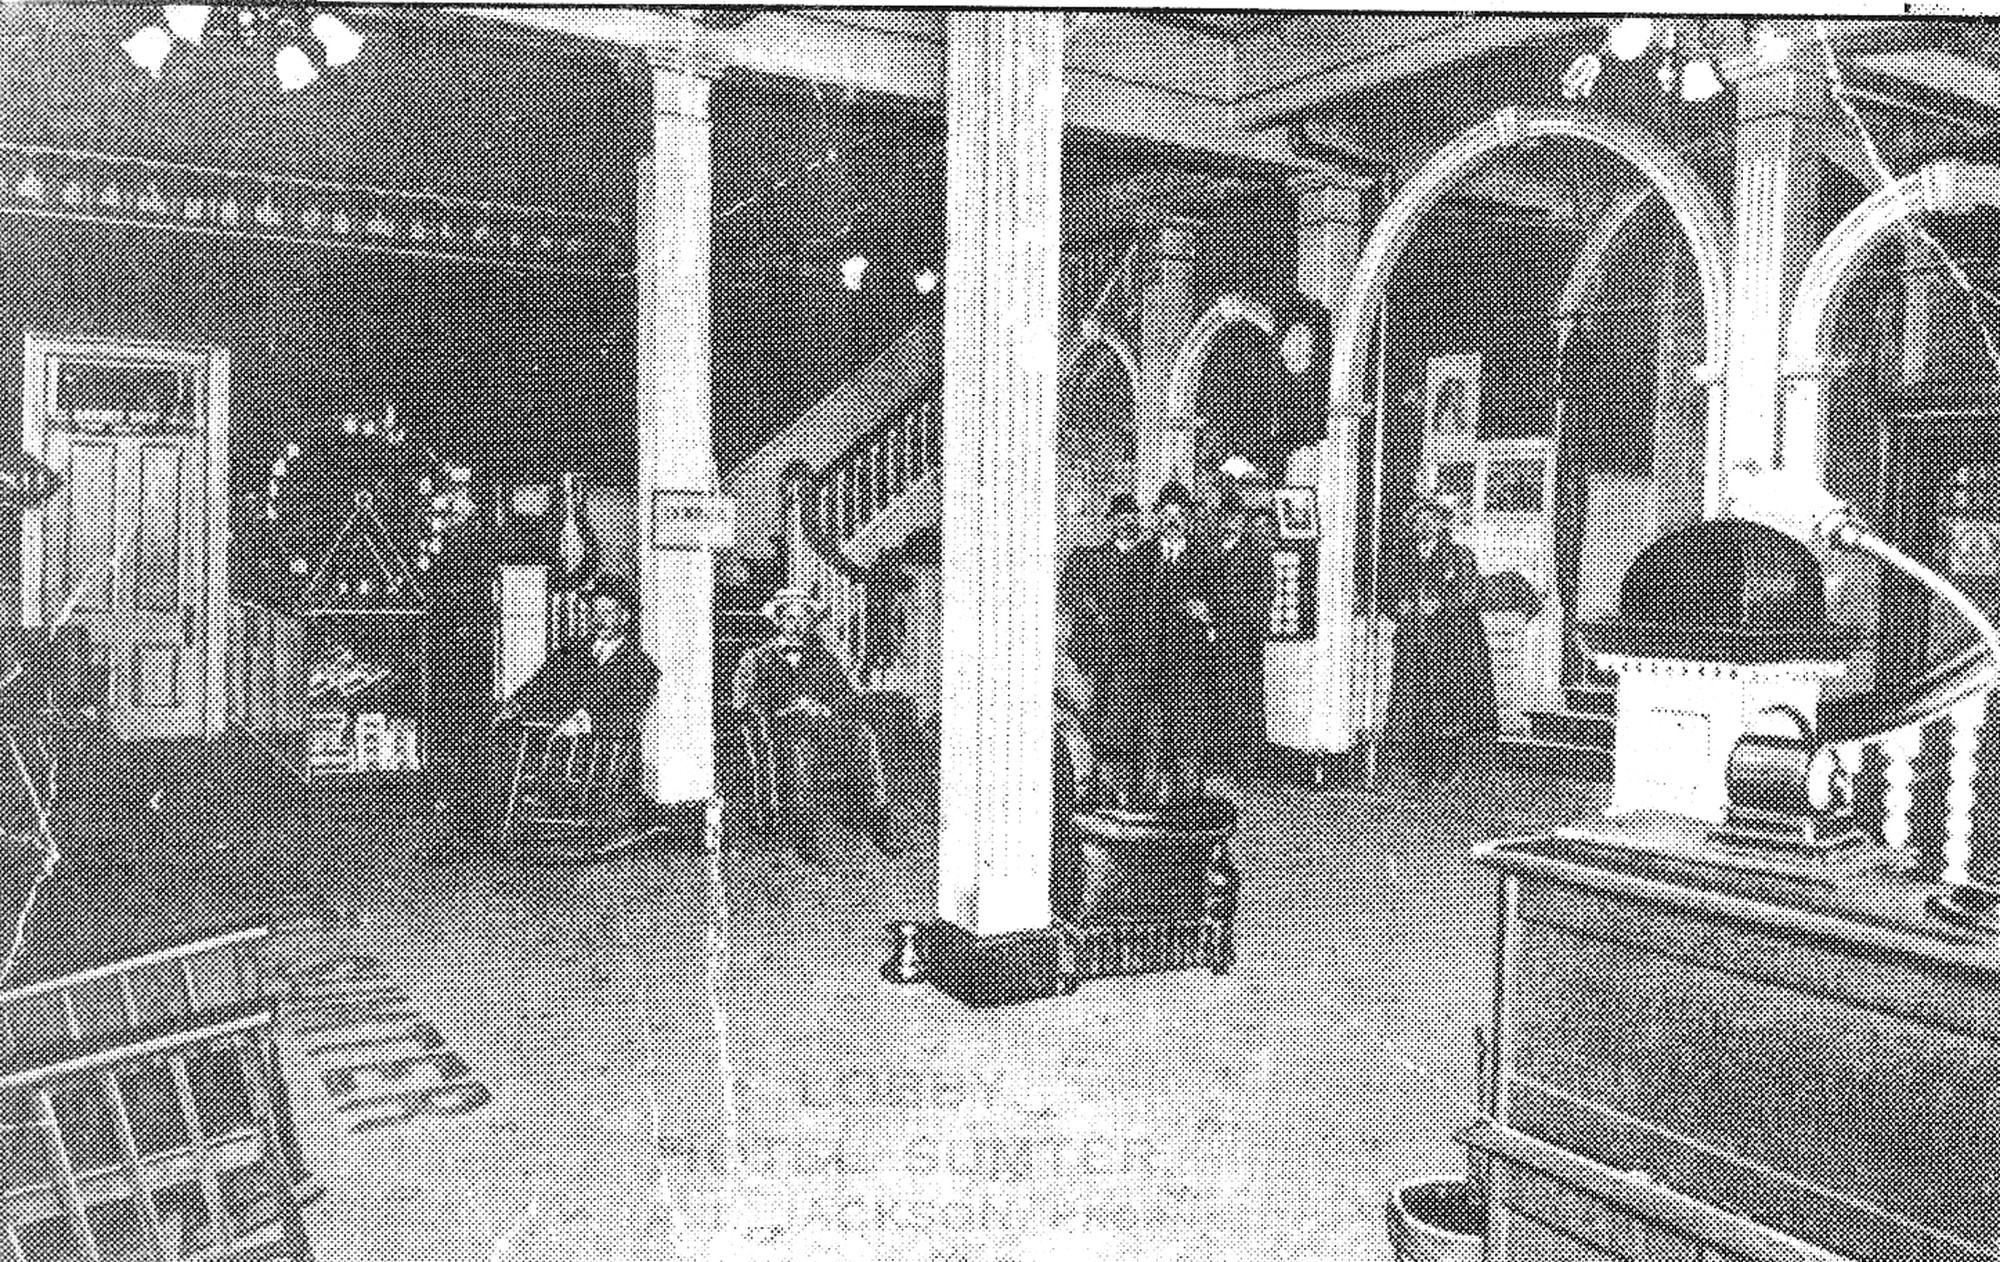 Several guests were photographed in the Hotel Sumter's elegant lobby.